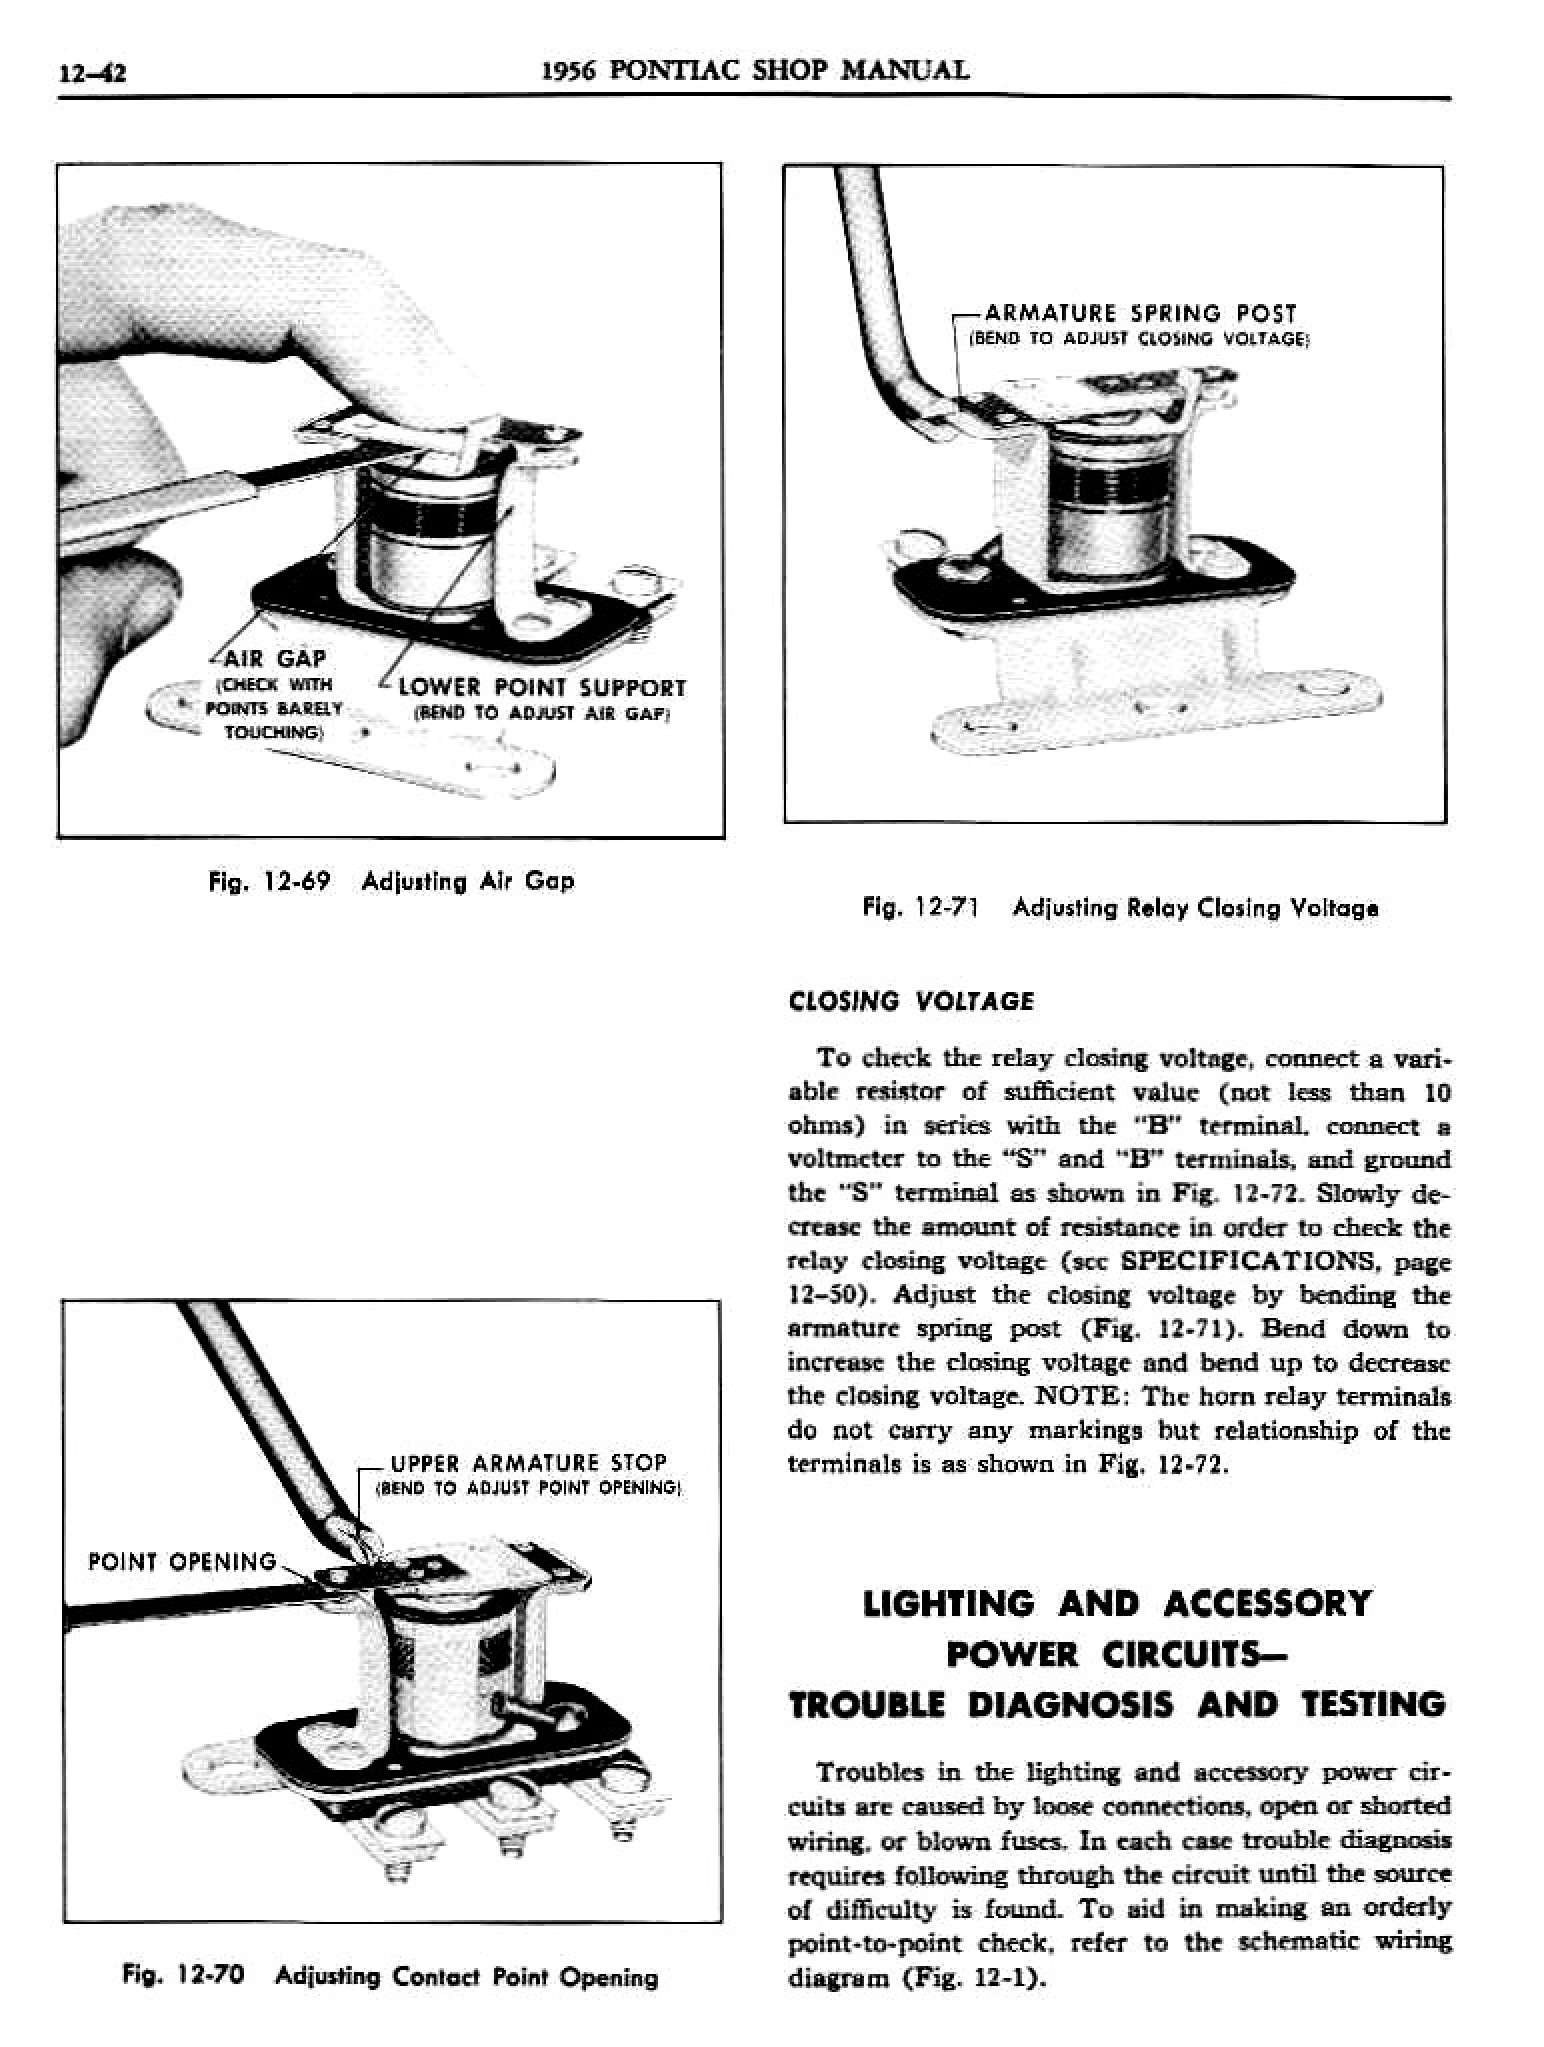 1956 Pontiac Shop Manual- Electrical Page 43 of 55